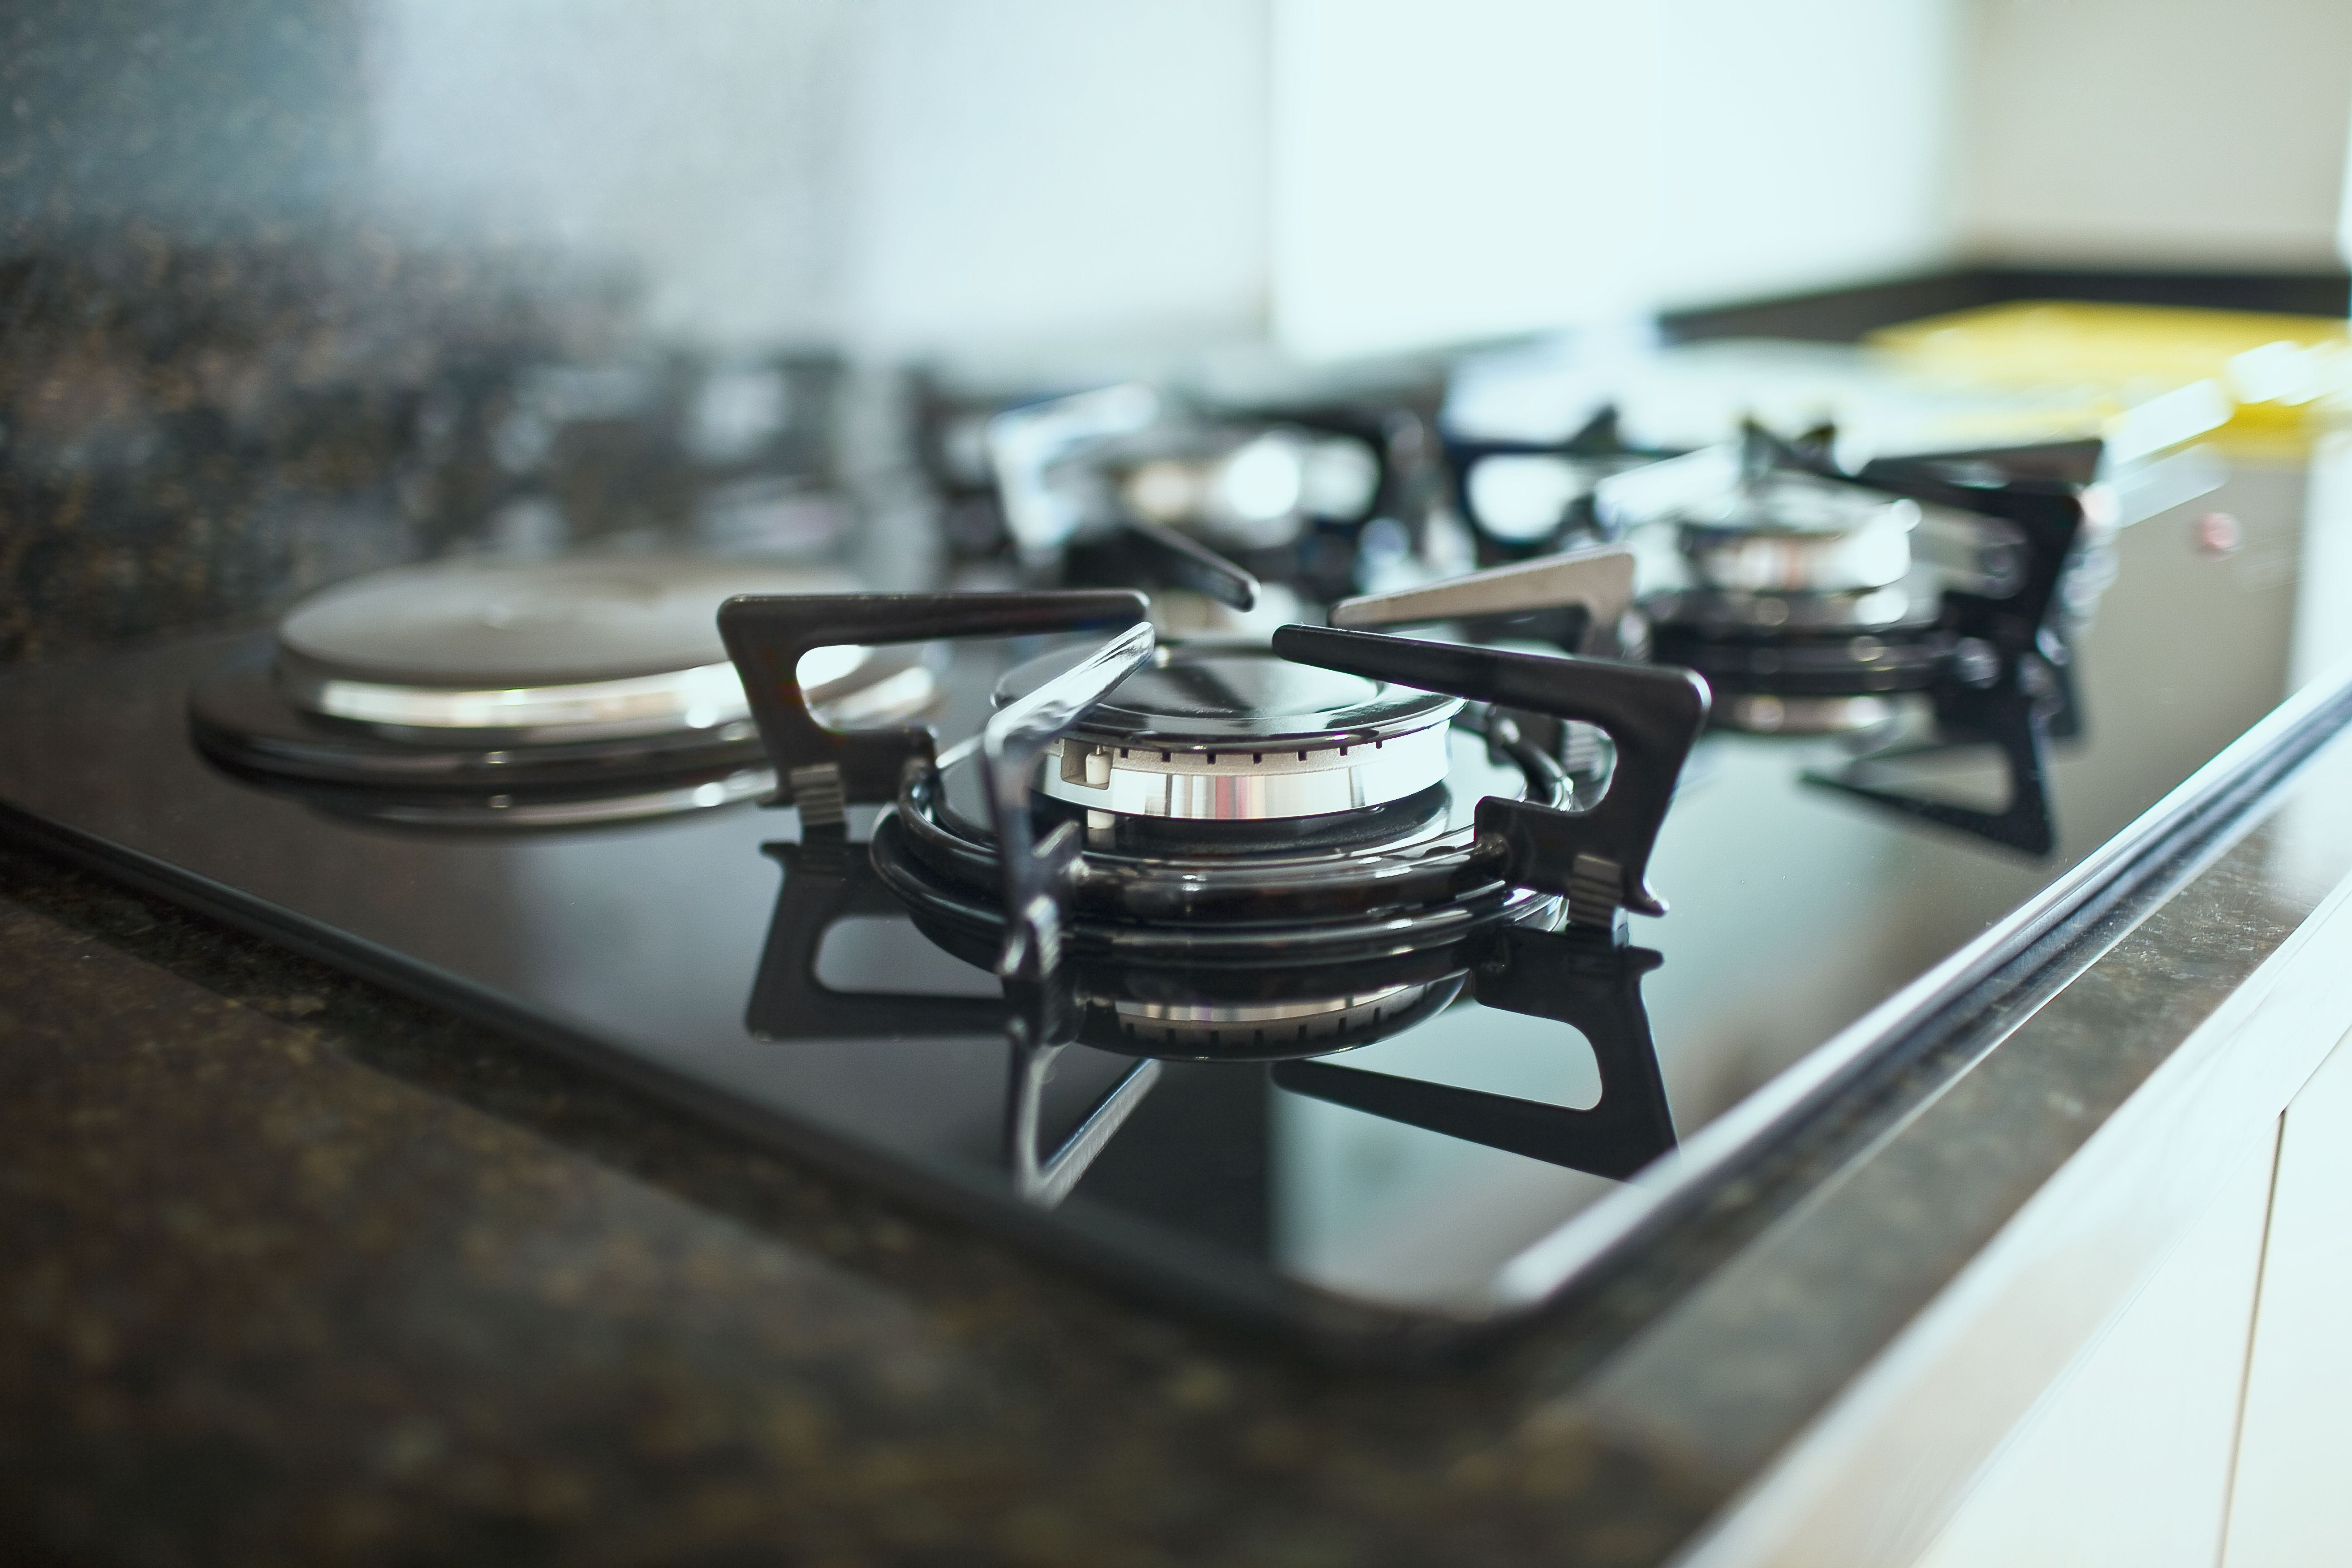 How to Shut Off the Gas Supply to Your Stove